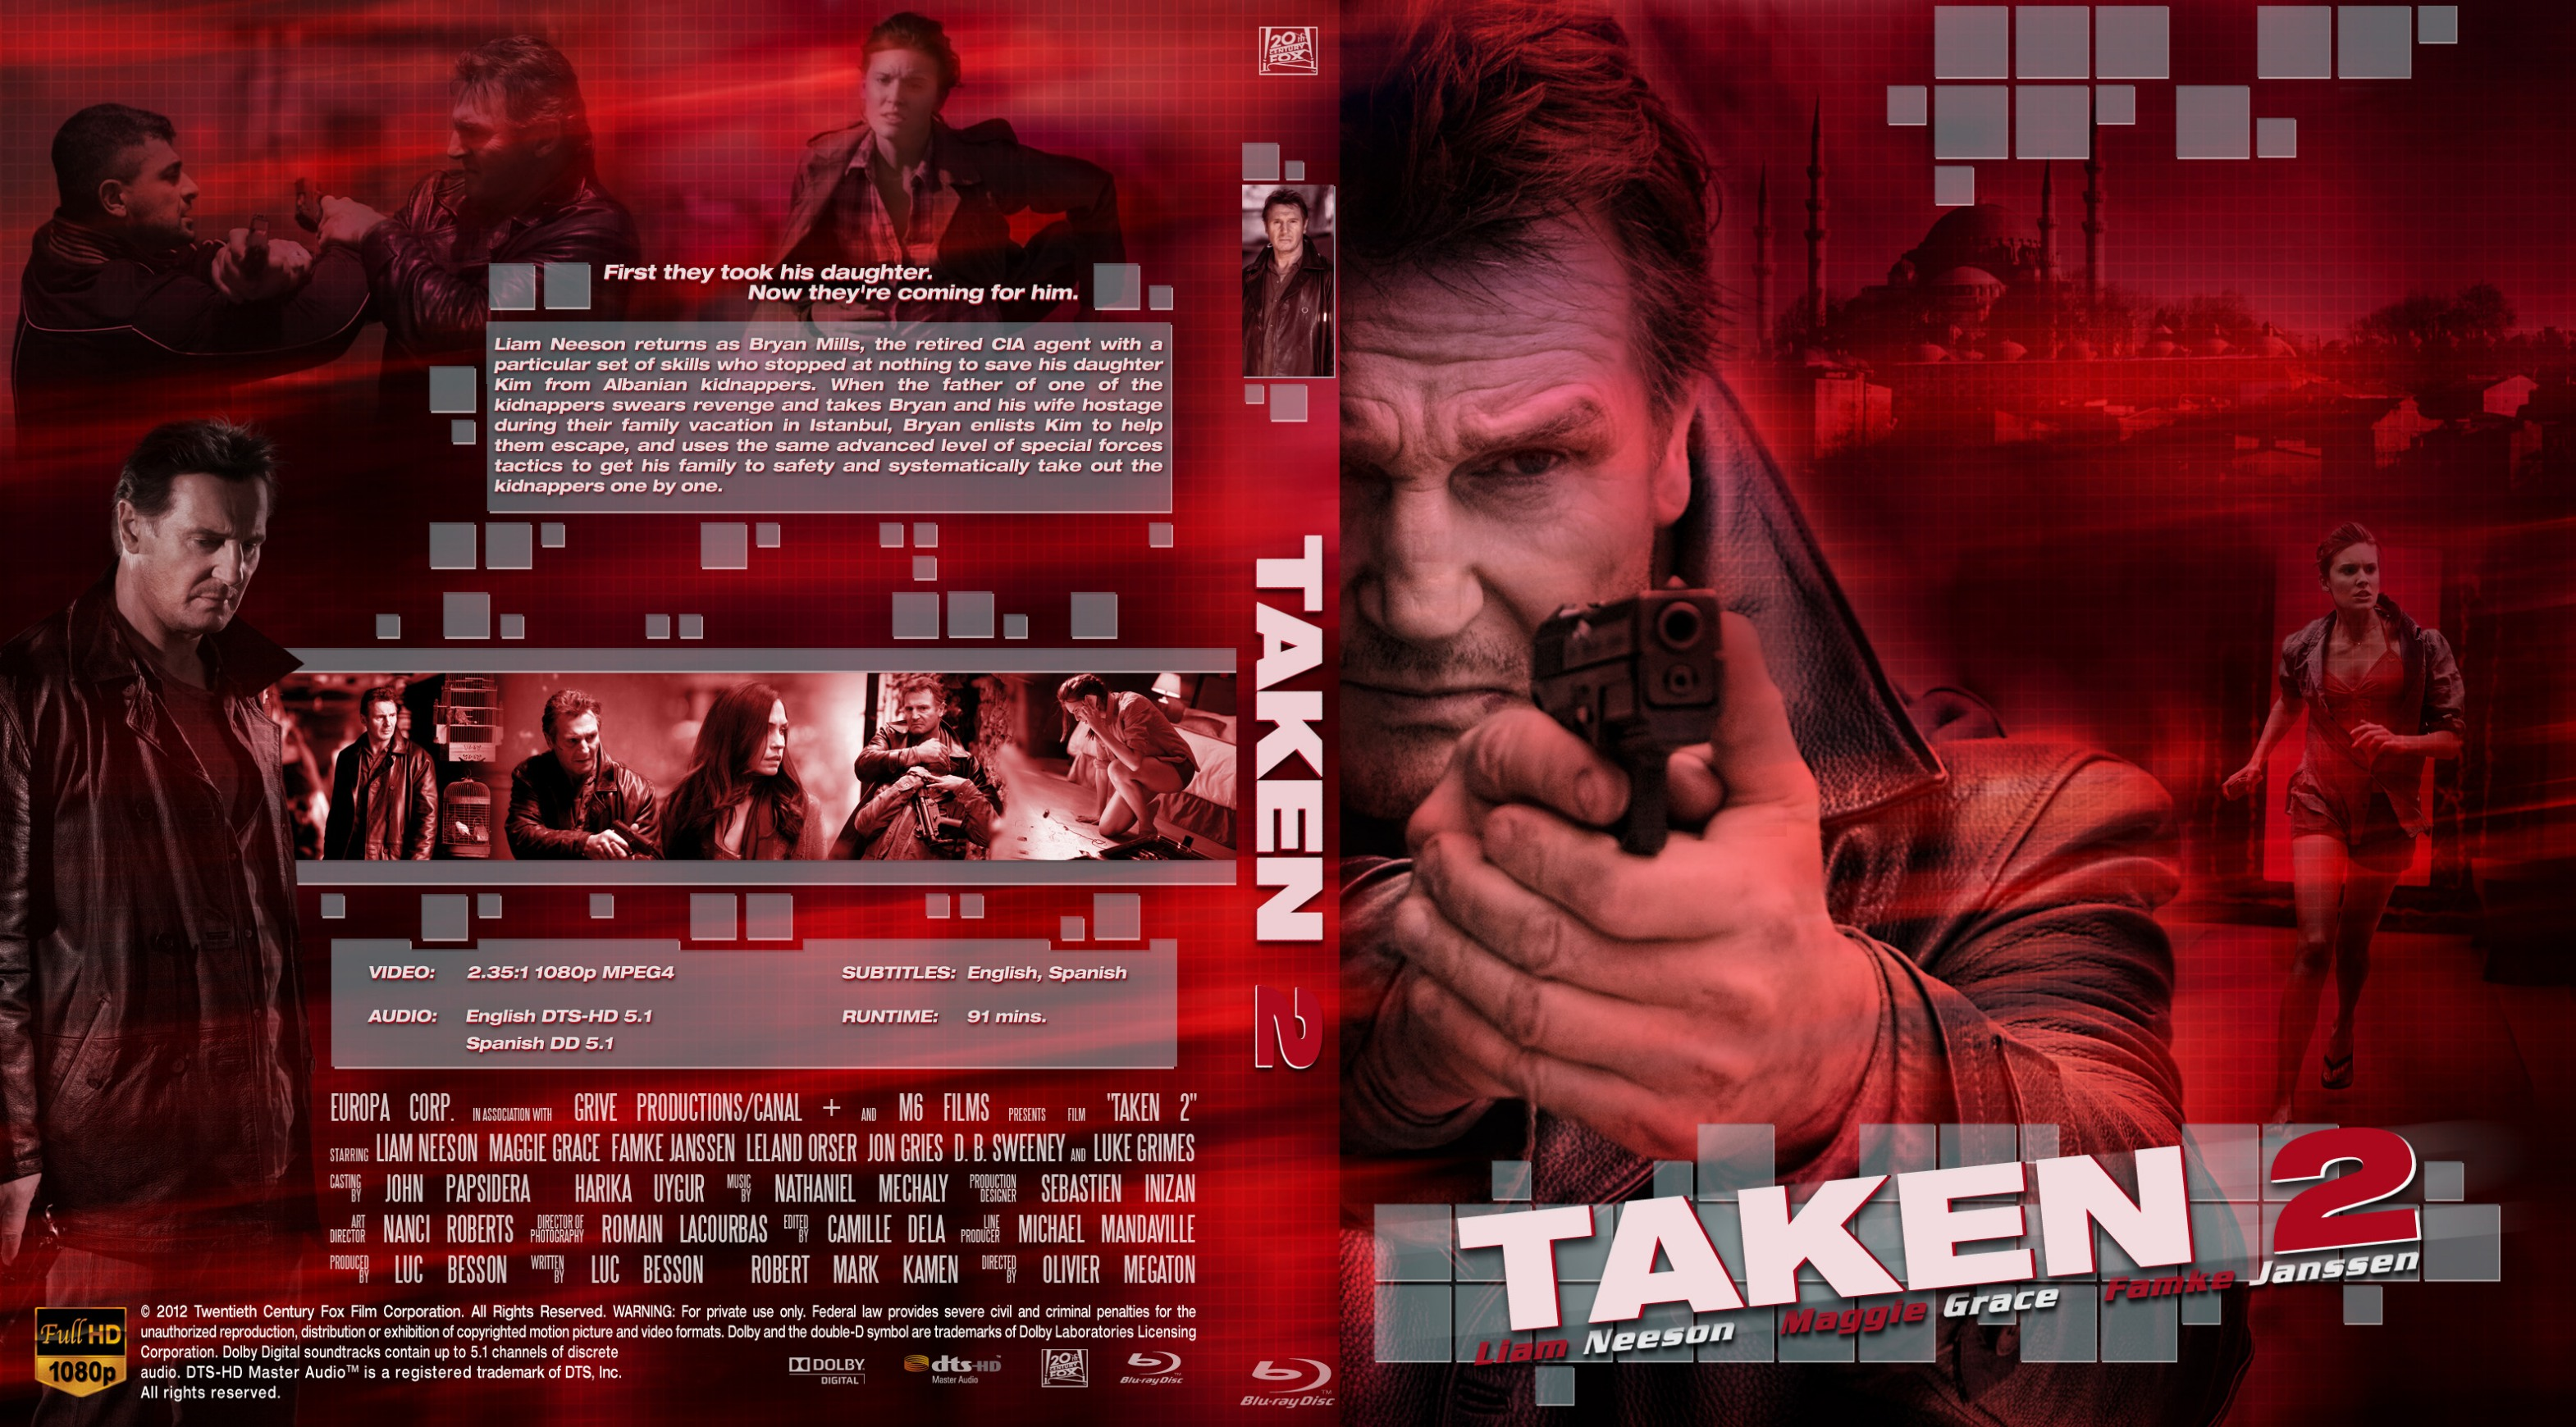 COVERS BOX SK ::: taken 2 (2012) - high quality DVD